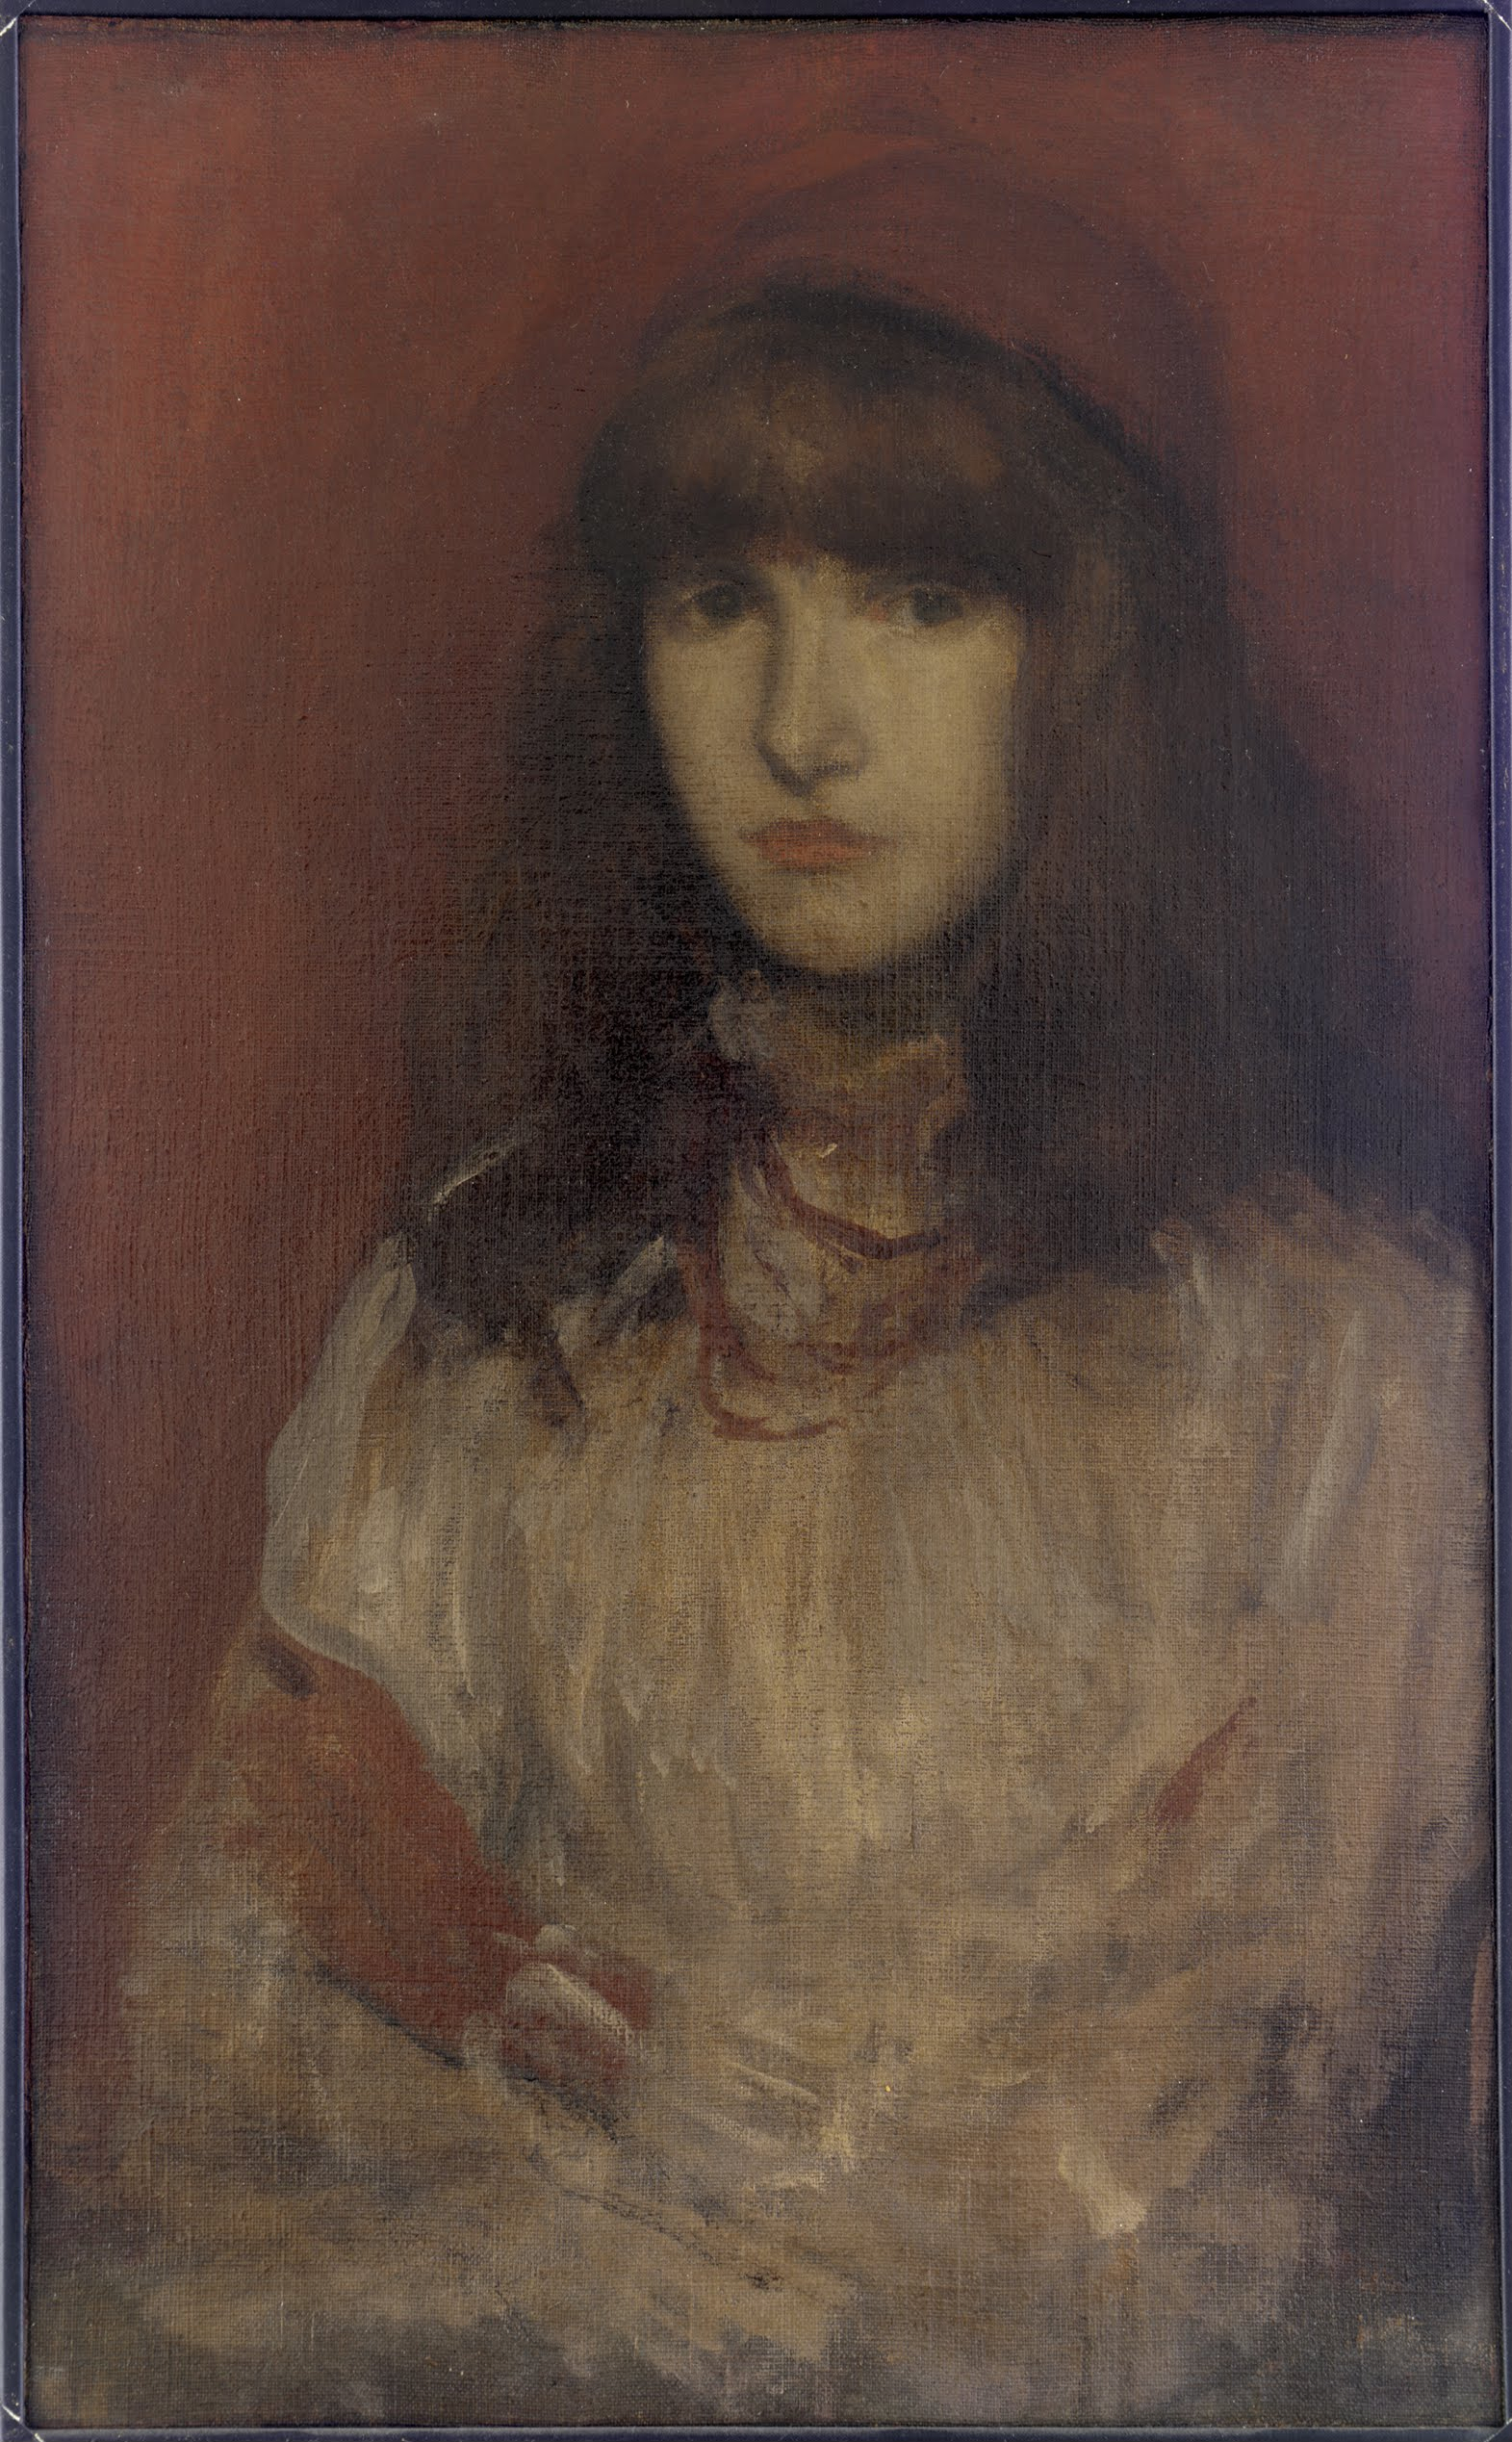 http://upload.wikimedia.org/wikipedia/commons/b/bf/James_McNeill_Whistler_-_The_Little_Red_Glove_-_Google_Art_Project.jpg